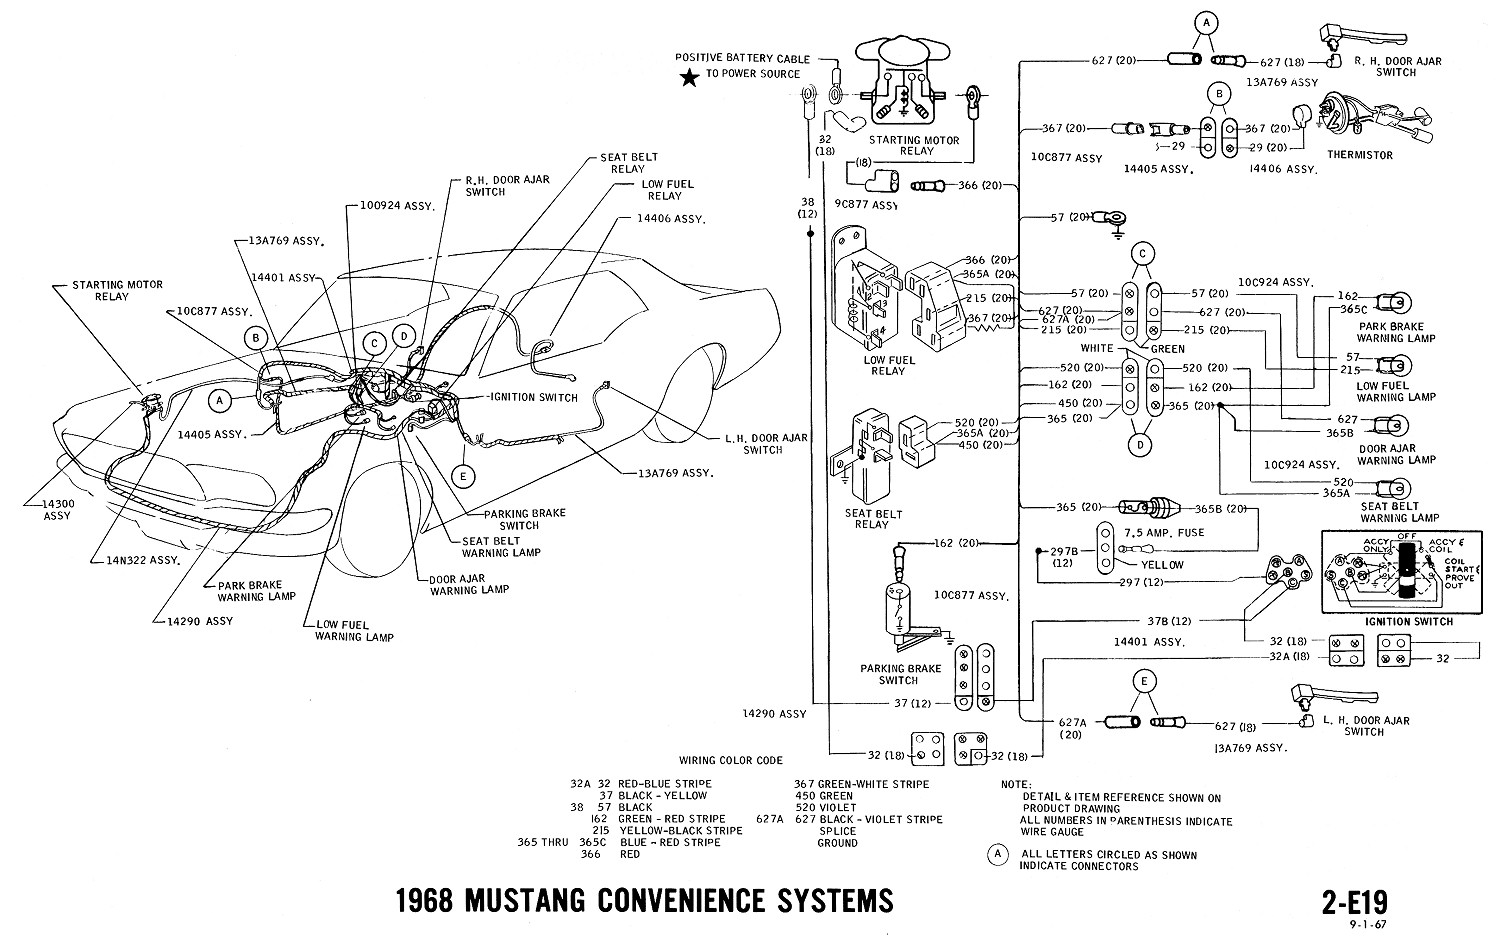 1970 Mustang Headlight Wiring Diagram Opinions About Ford Harness 1968 Diagrams And Vacuum Schematics Average Joe Restoration 1969 Gto Switch